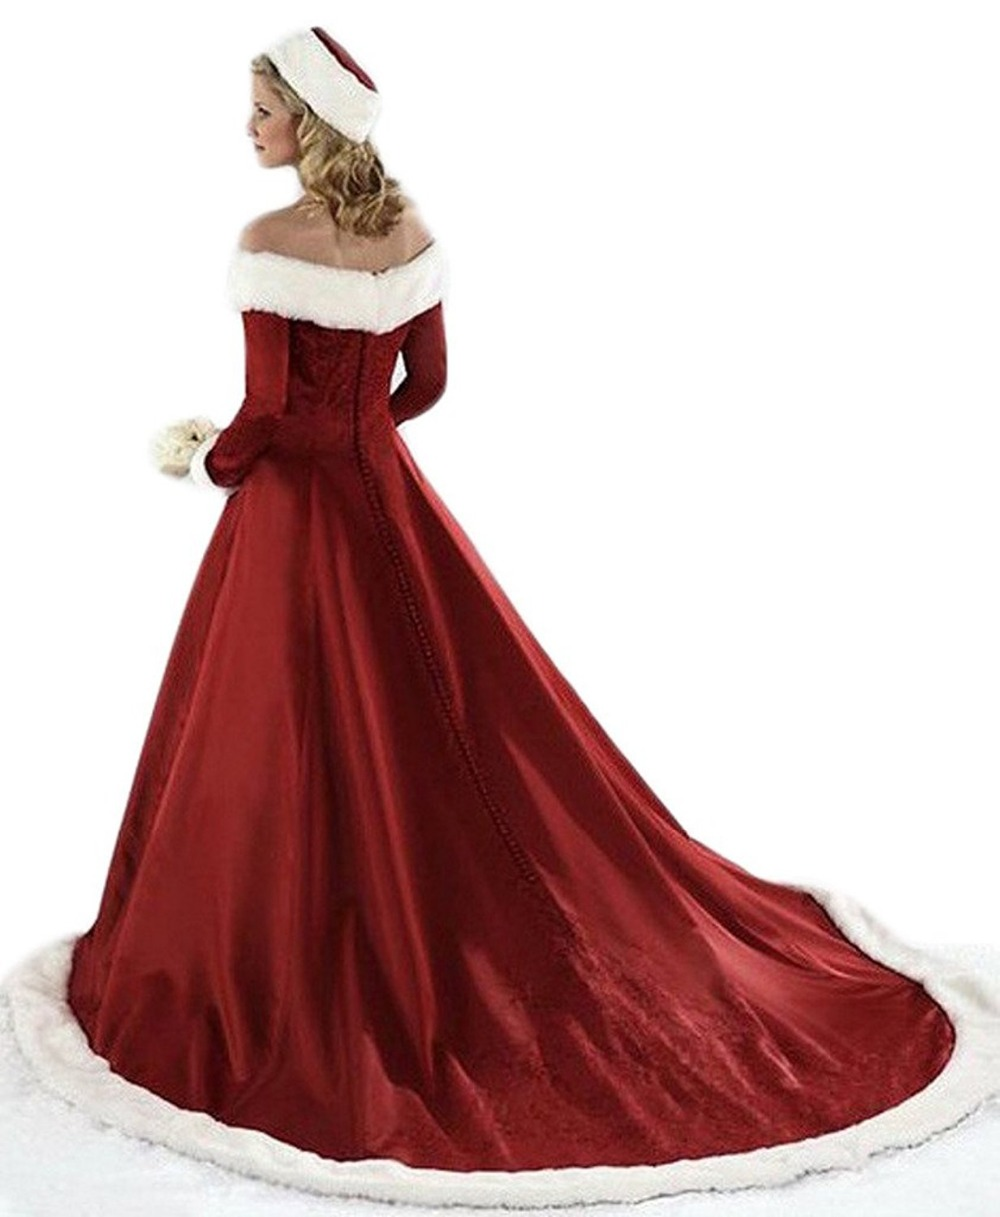 51e19f89427d7 2019 New Women s Christmas Wedding Dresses Plus Size Long Sleeve Winter  Satin With Faux Fur Bridal Gown-in Wedding Dresses from Weddings   Events  on ...